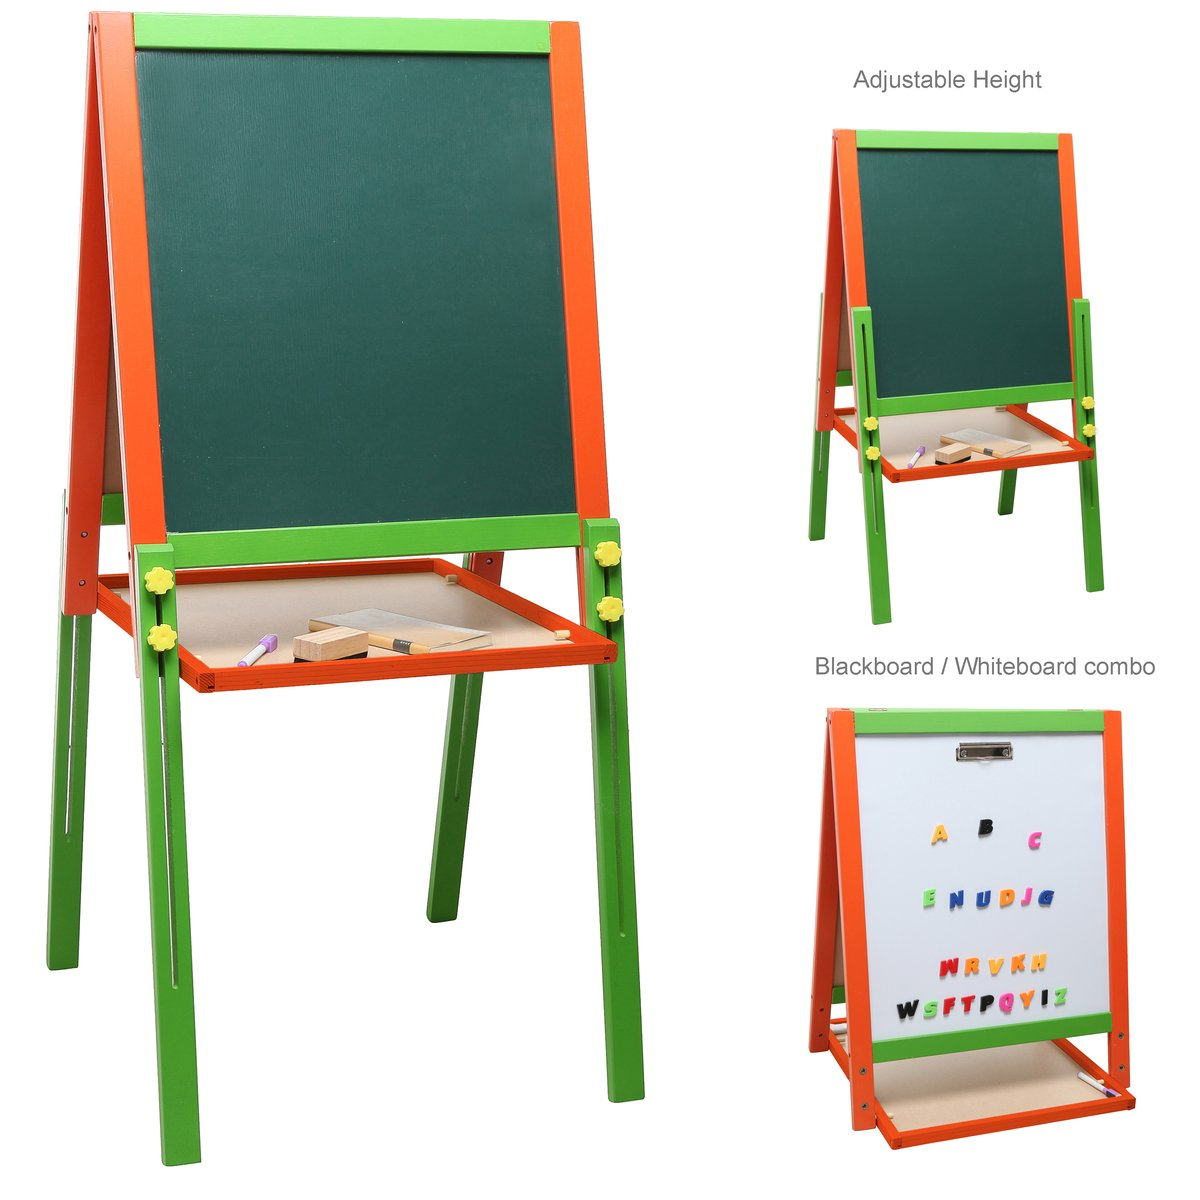 Sticker Writing For Walls Remove Crayon From Chalkboard Beautiful Remove Crayon